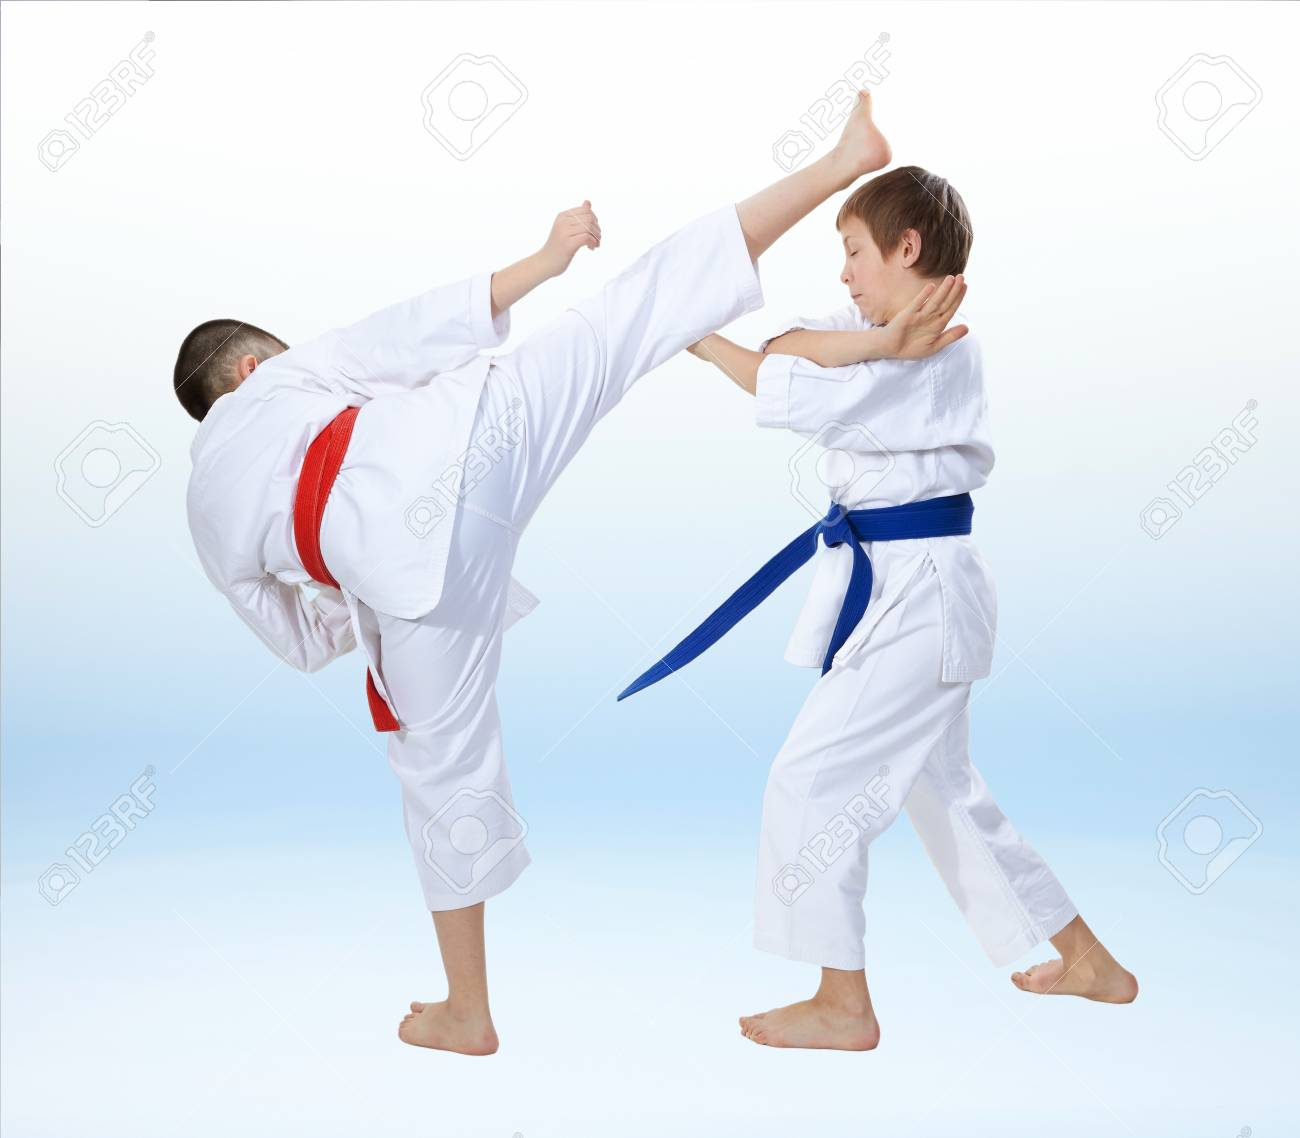 Children Are Training Karate Techniques On A Light Background 1300x1138